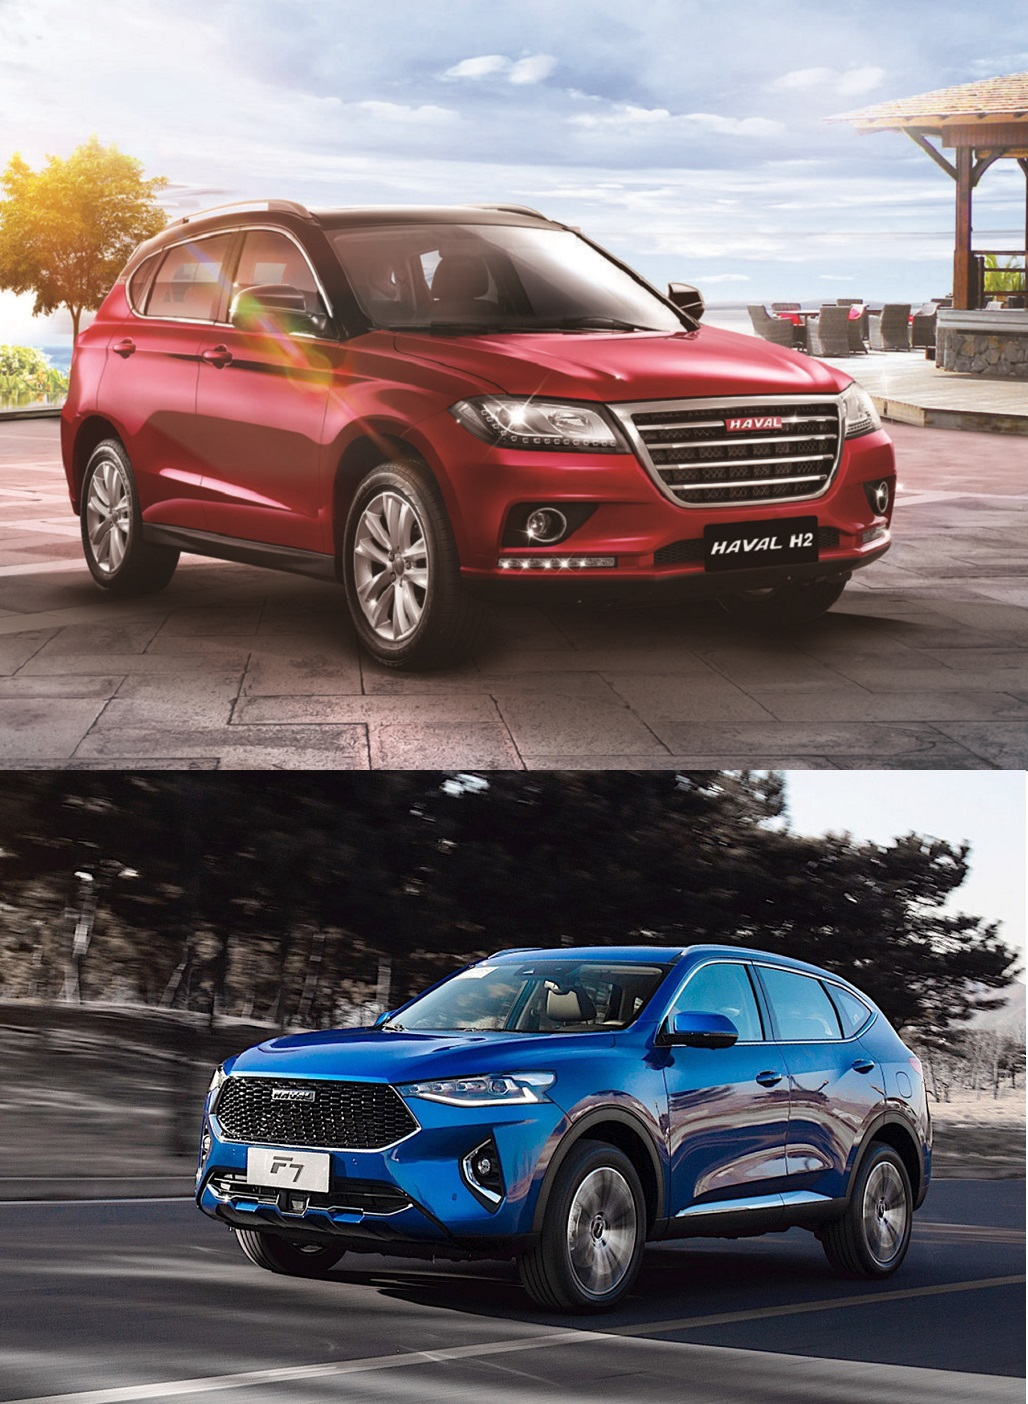 Haval H2 F7 collage